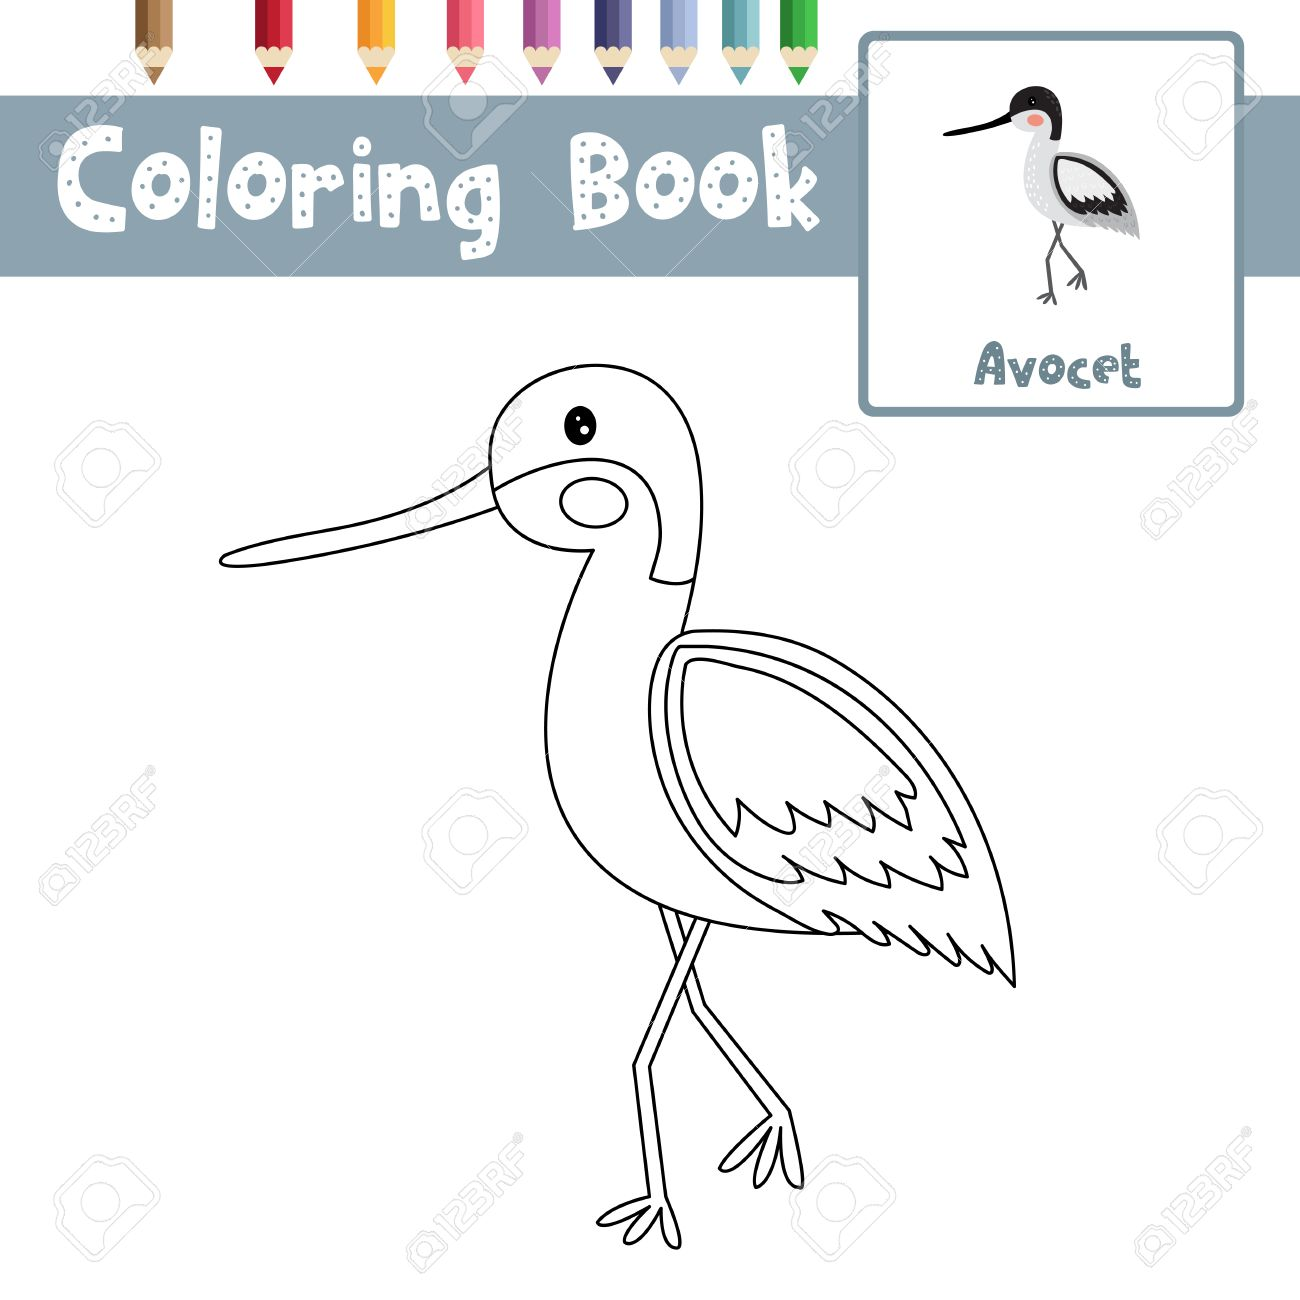 Coloring Page Of Avocet Standing In Water Animals For Preschool Kids  Activity Educational Worksheet. Vector